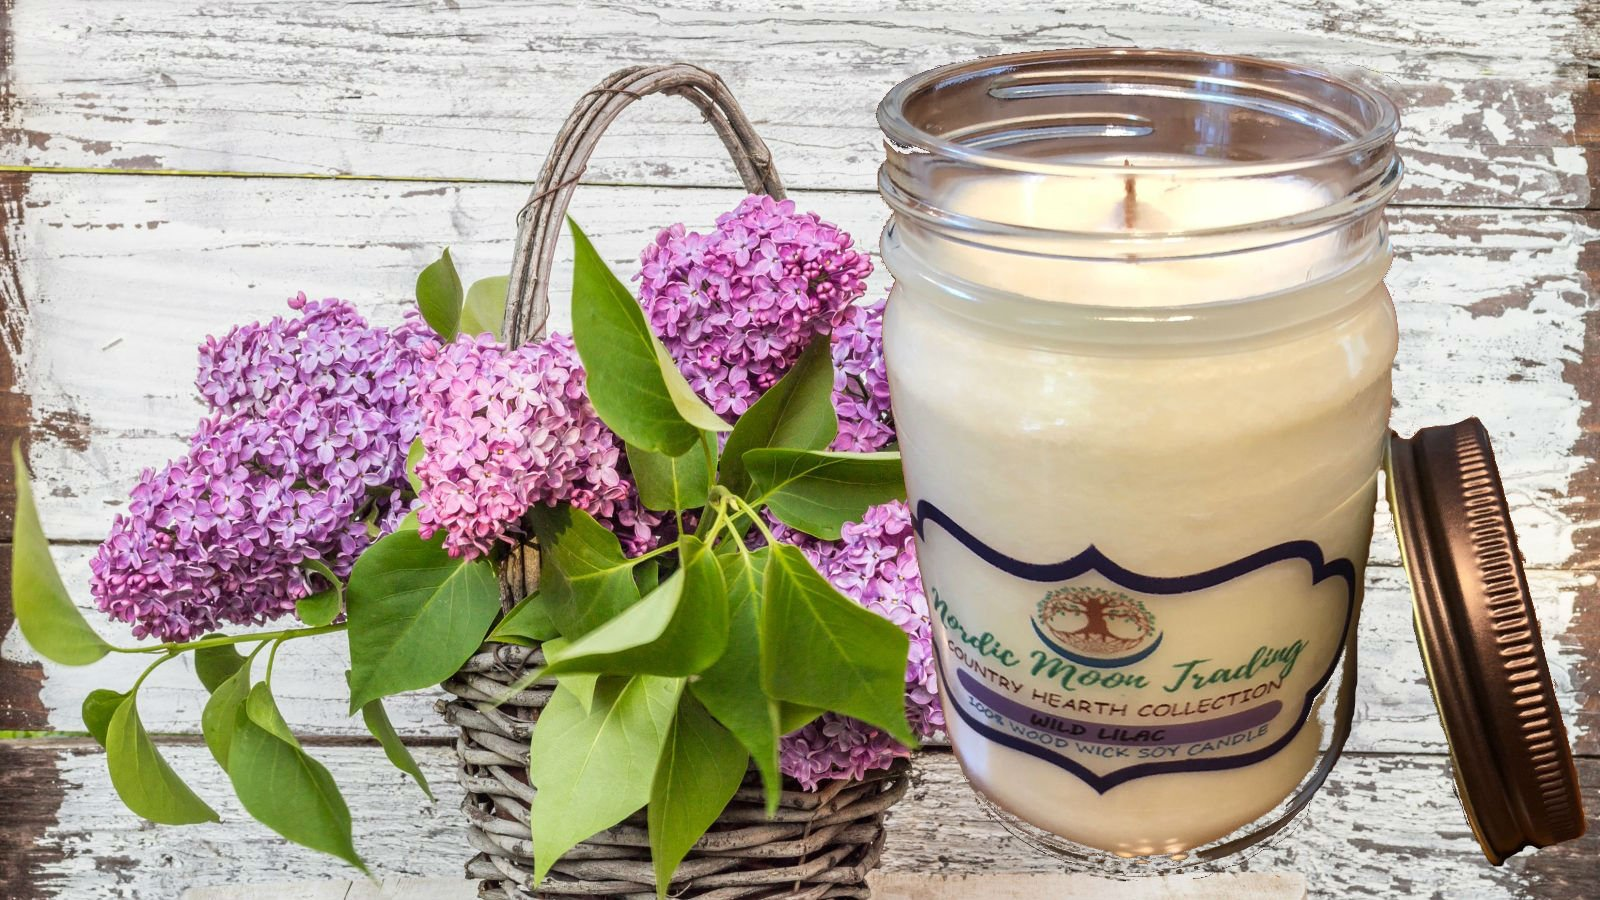 Nordic Moon Trading 100% Natural Soy Wax, Wood Wick Scented Candle 12 oz Mason Jar - Wild Lilac. Made in USA by Family Owned Business. 100 Hours of Burn Time. Clean Burning, No Black Soot. by Nordic Moon Trading (Image #6)